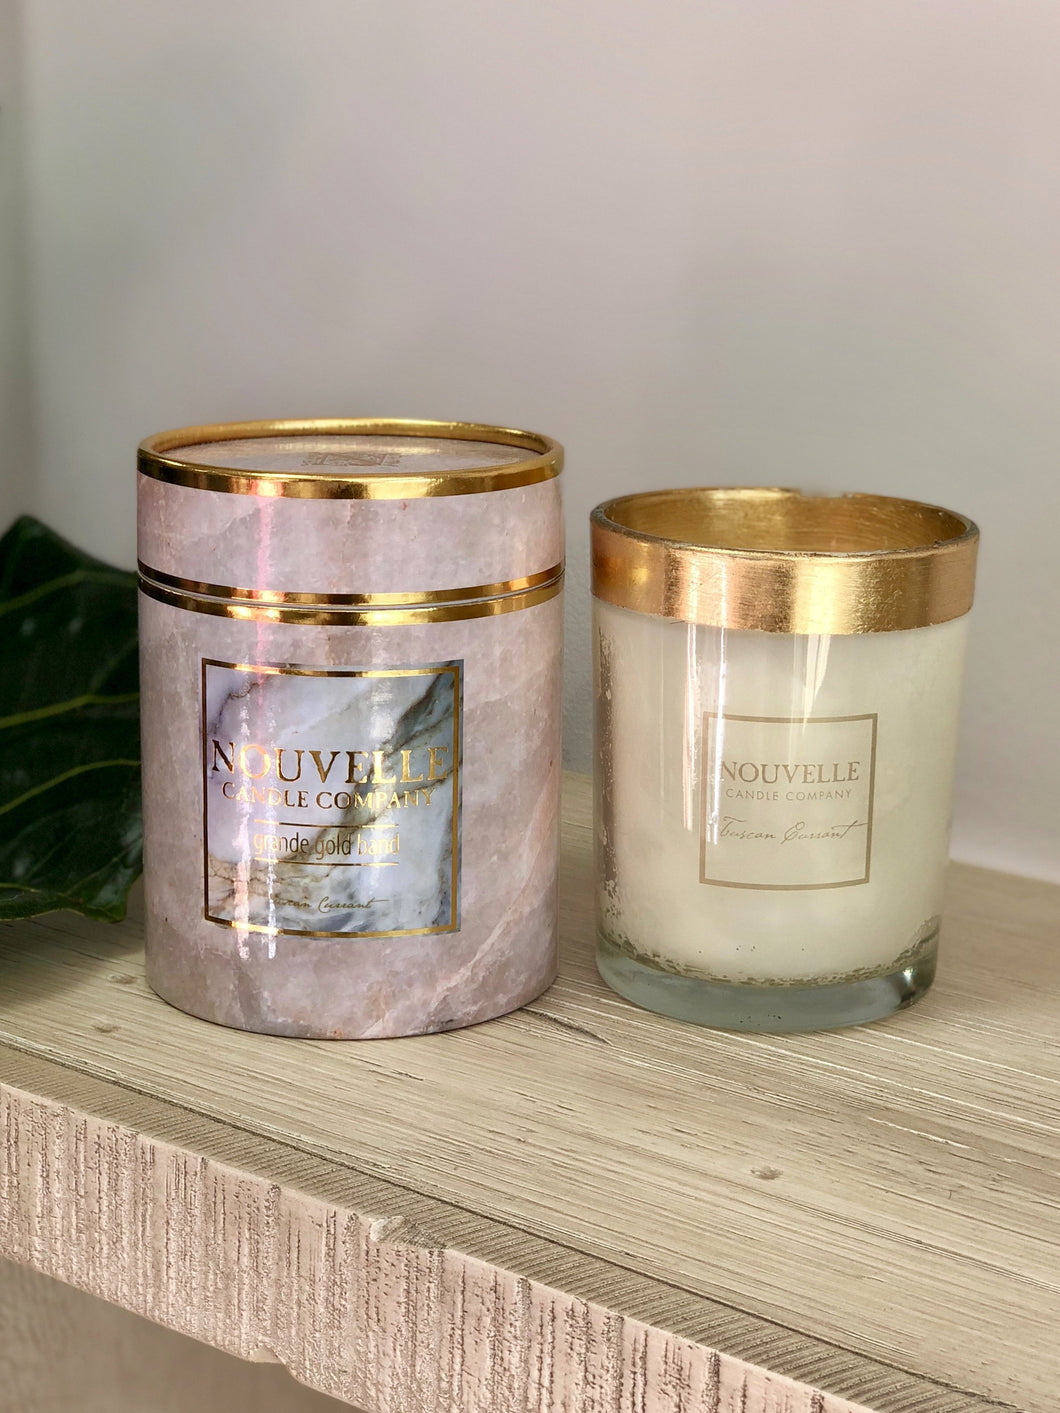 Nouvelle Candle Company - Grande Boxed Gold Band Candle